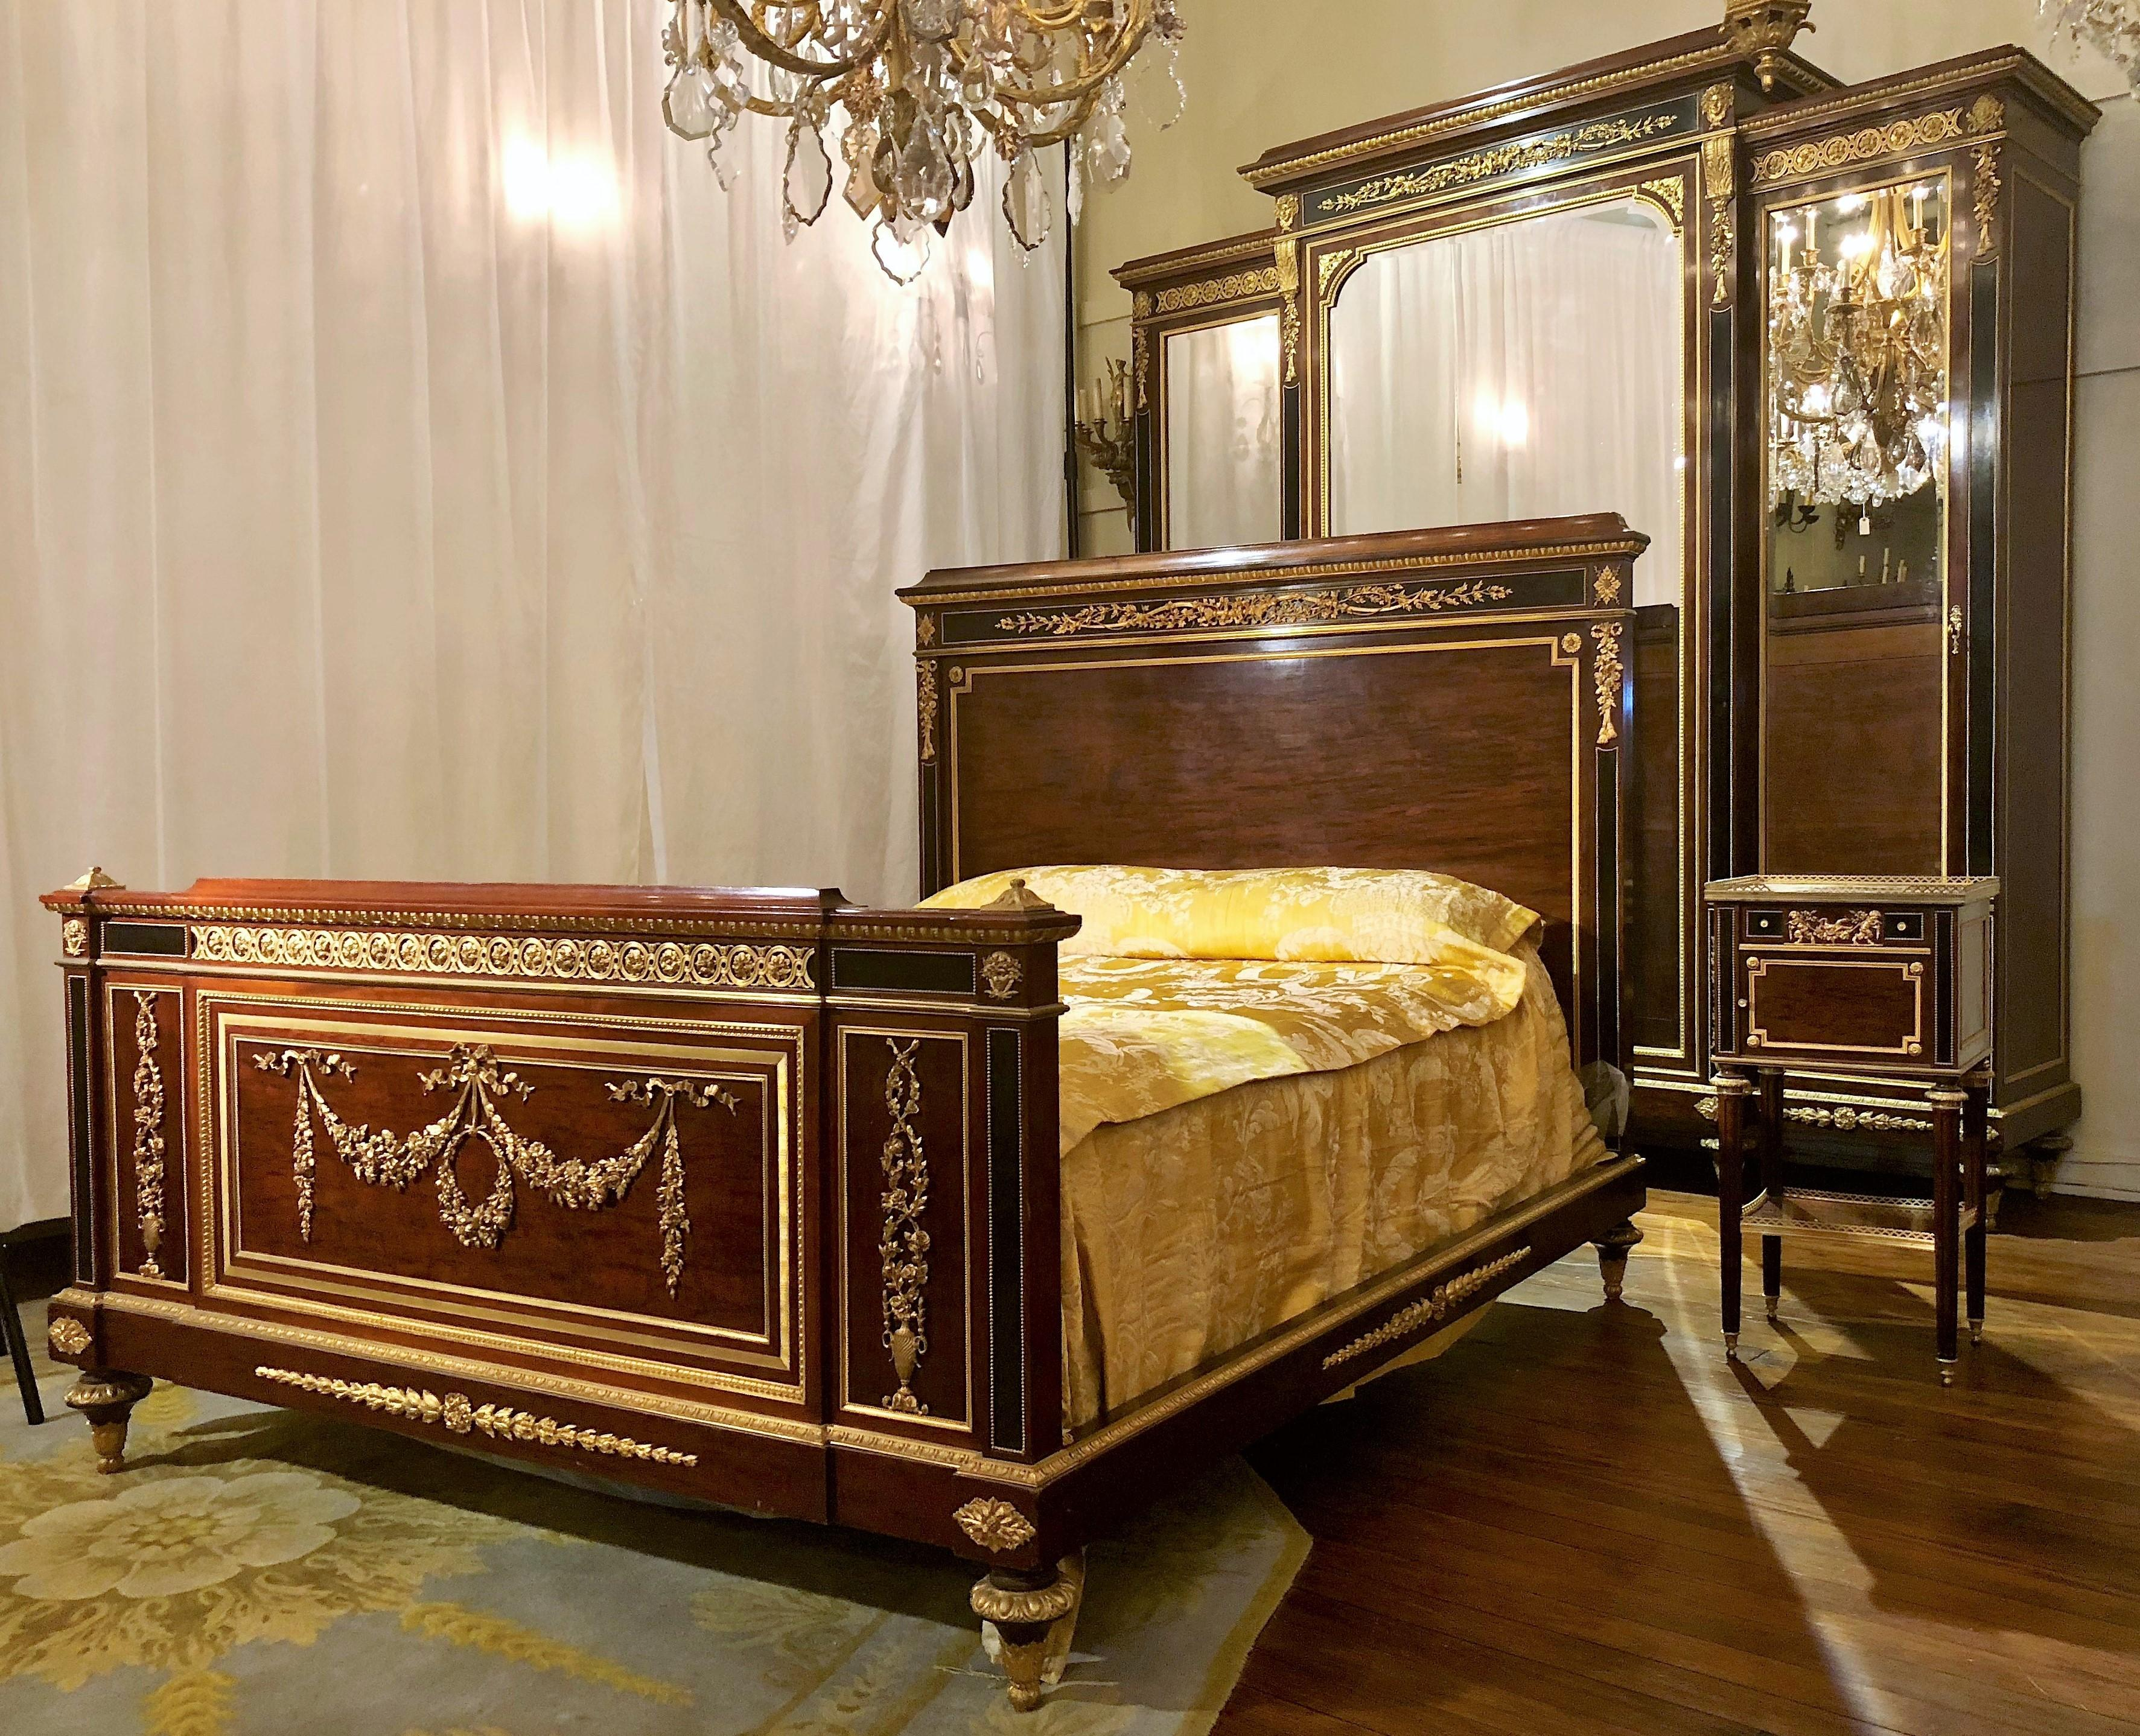 BRST012: Magnificent Antique French Late 19th Or Early 20th Century Louis  XVI Style Three